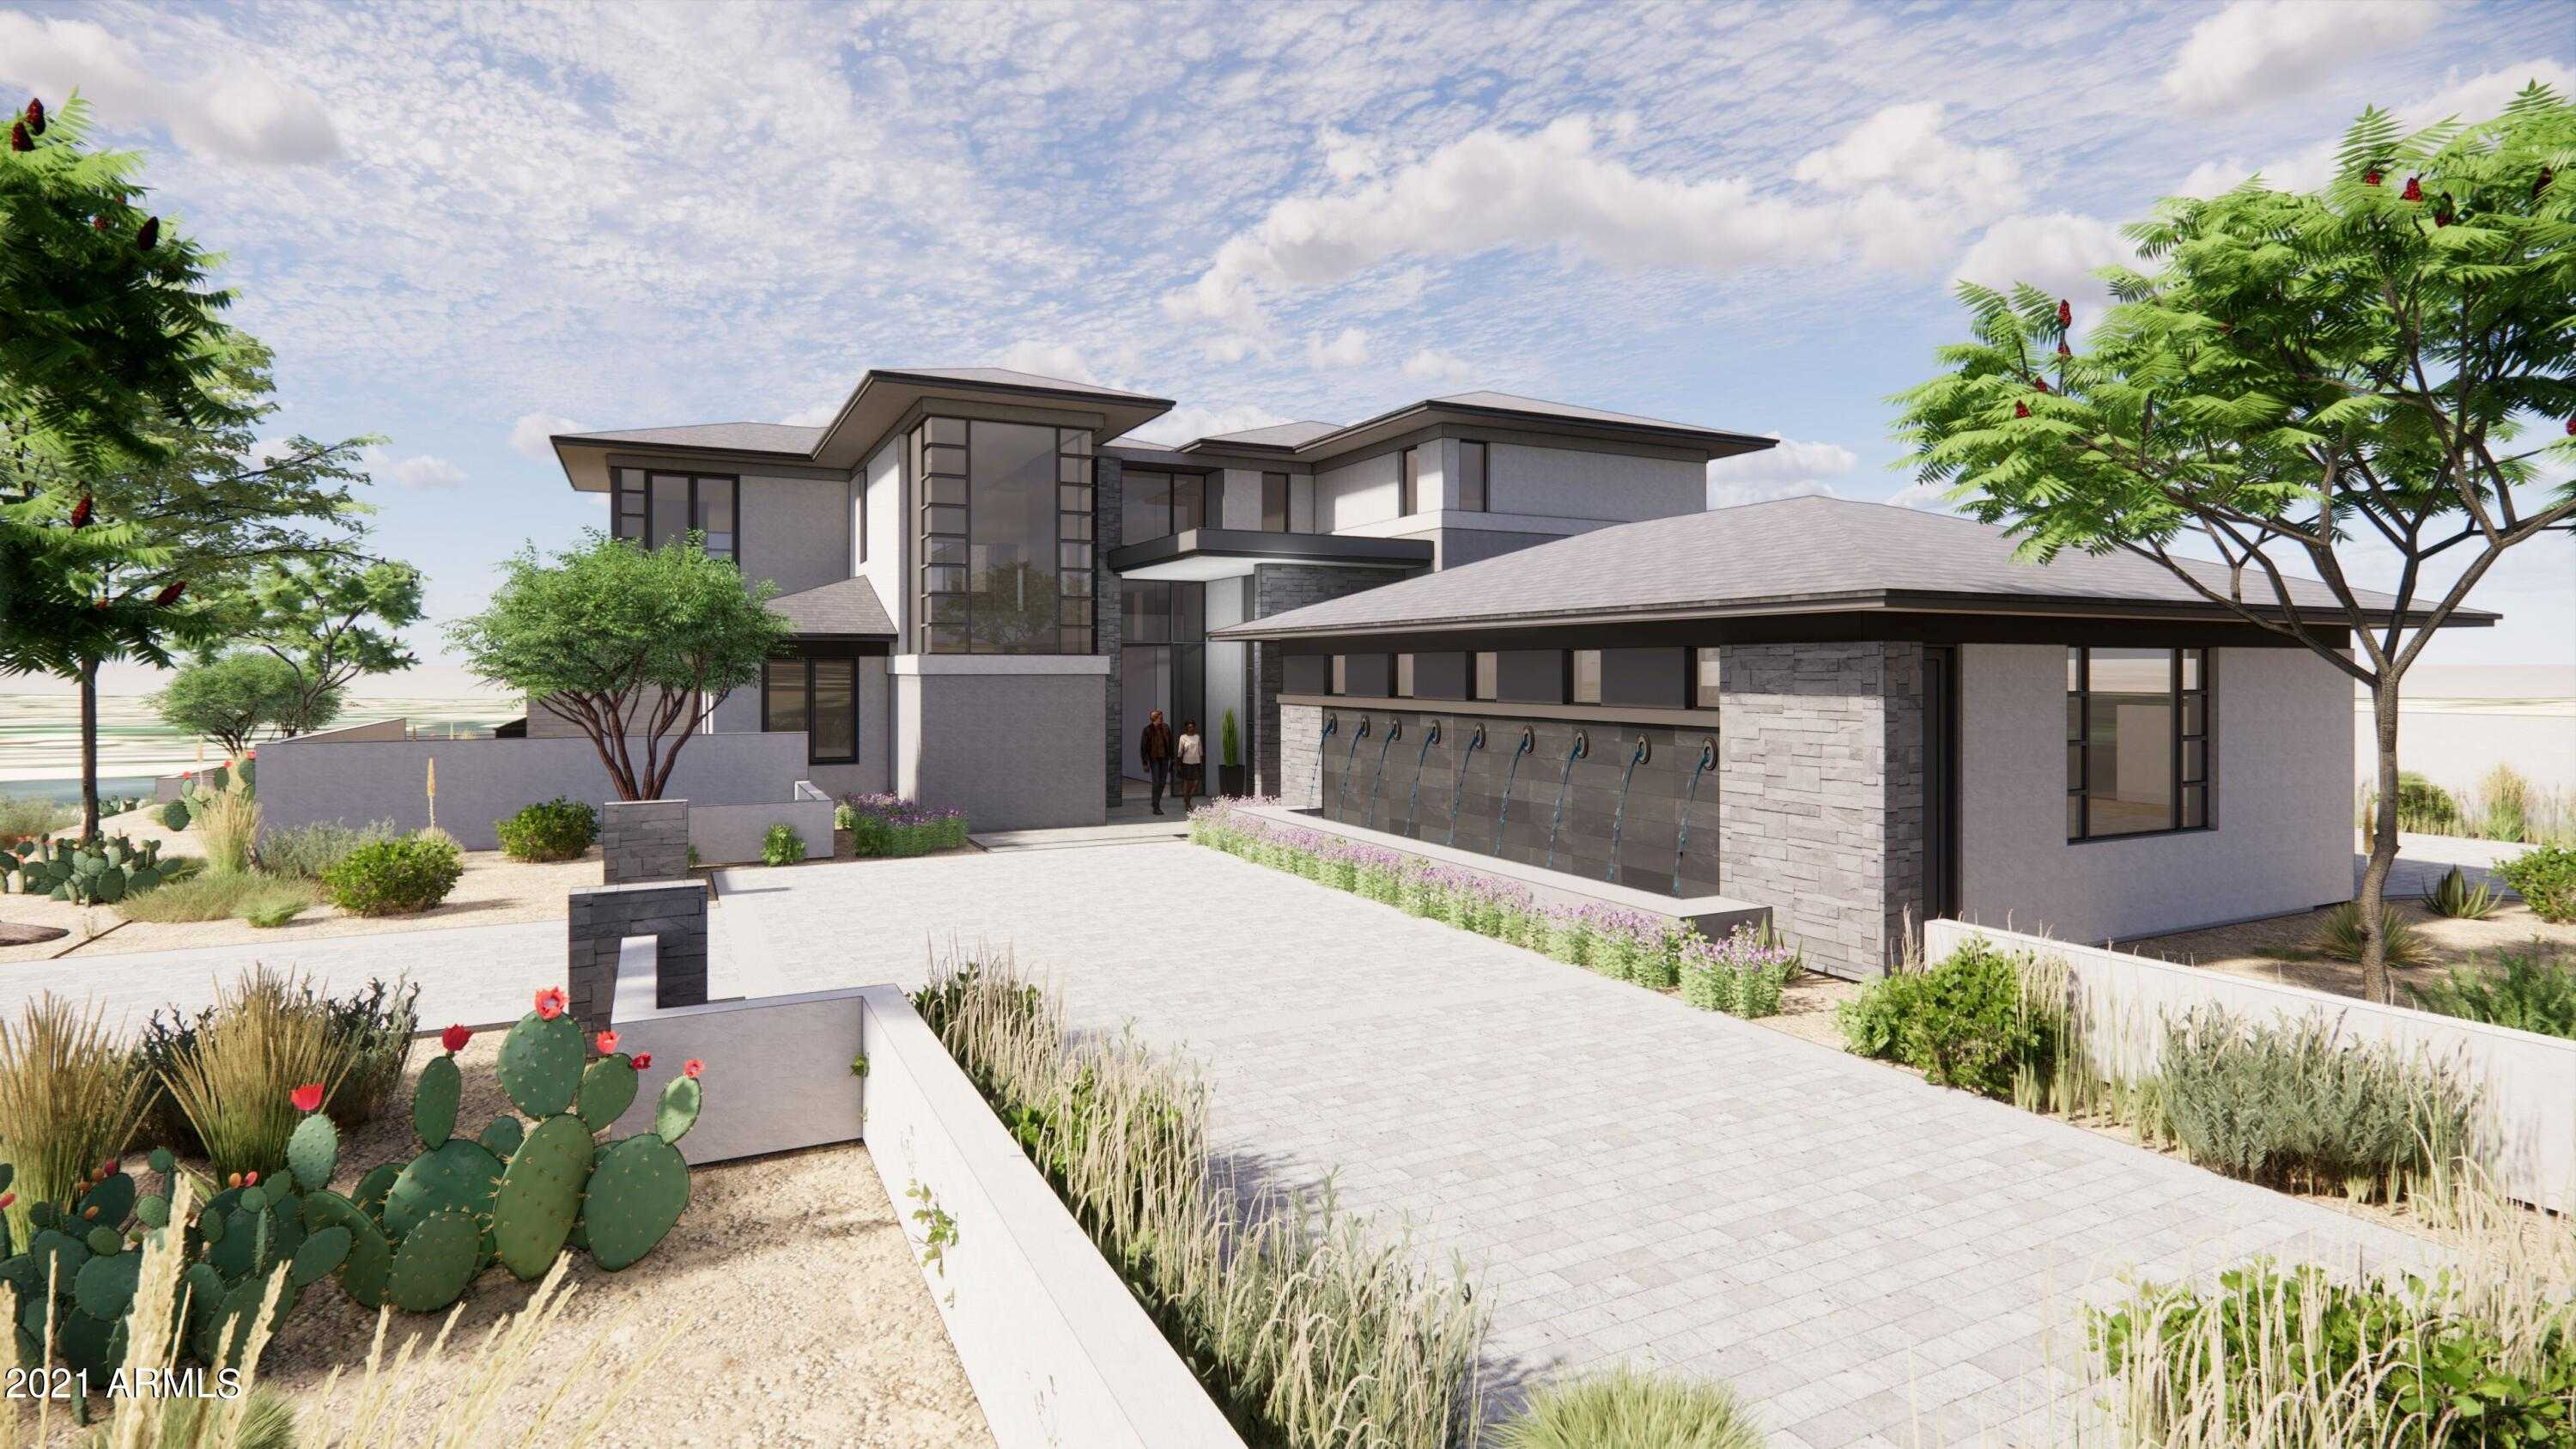 $4,950,000 - 5Br/6Ba - Home for Sale in Silverleaf At Dc Ranch, Scottsdale